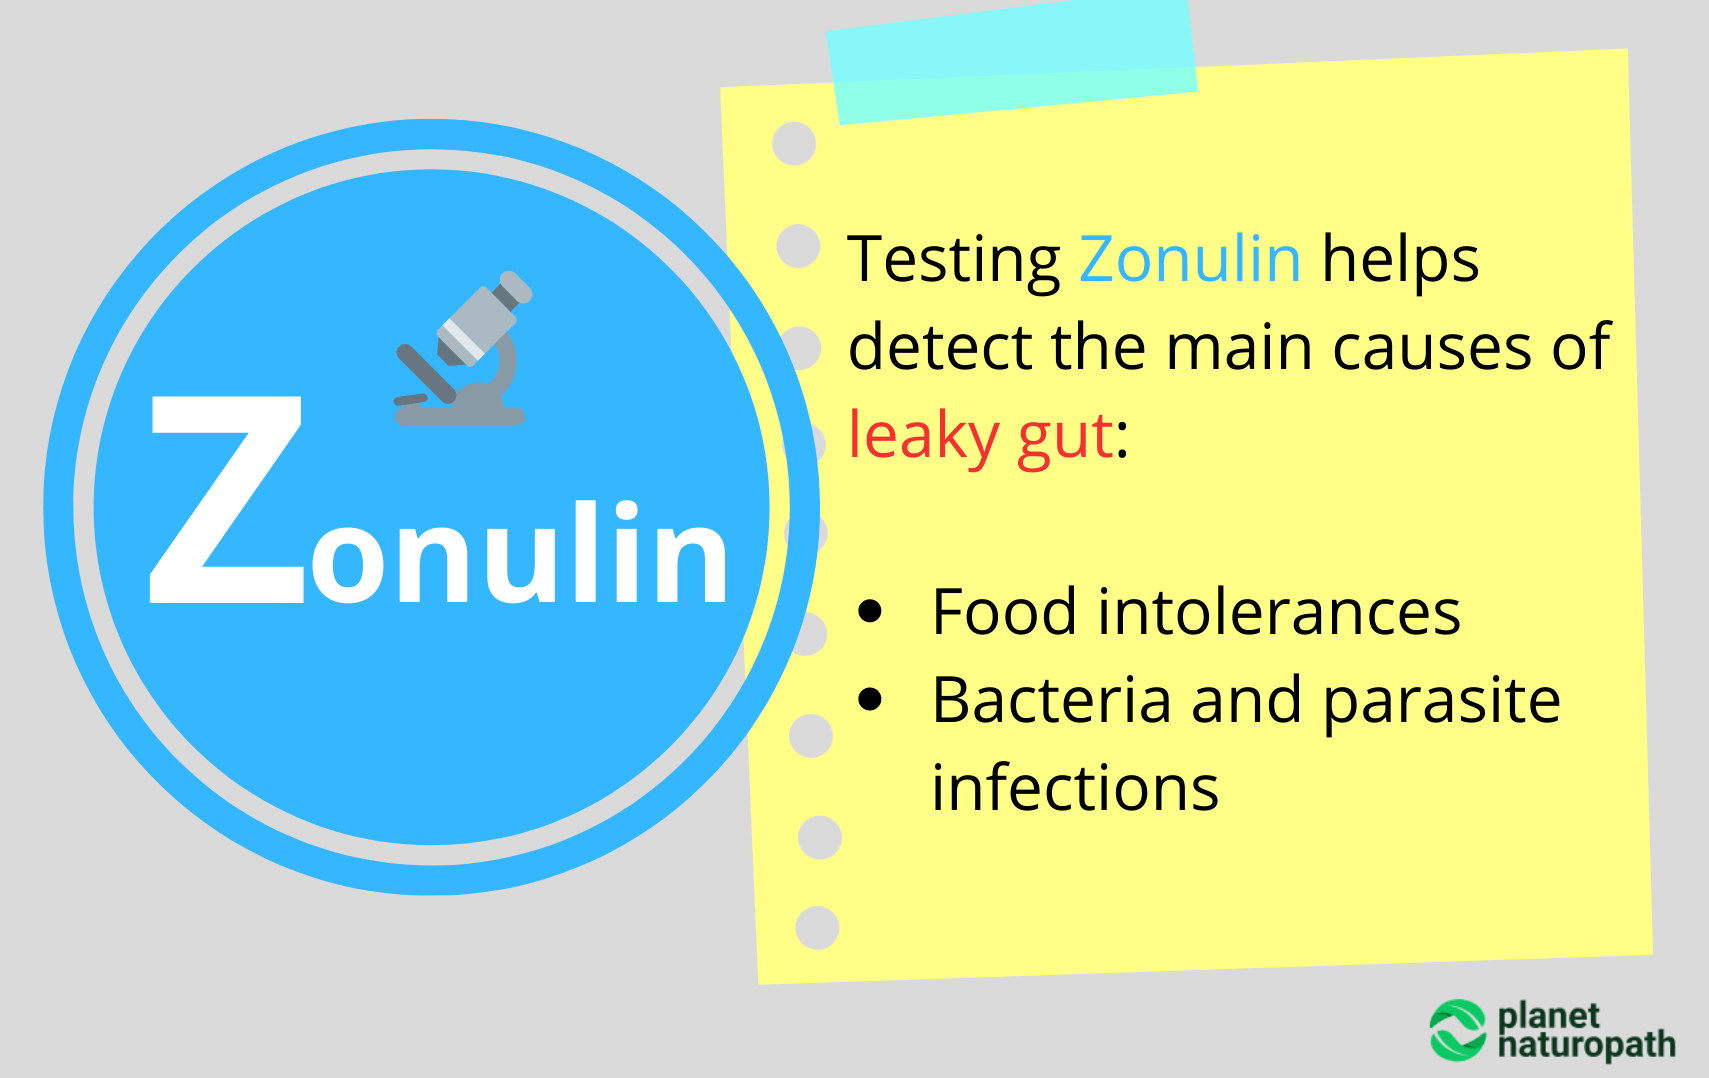 Testing Zonulin helps detect the main causes of leaky gut